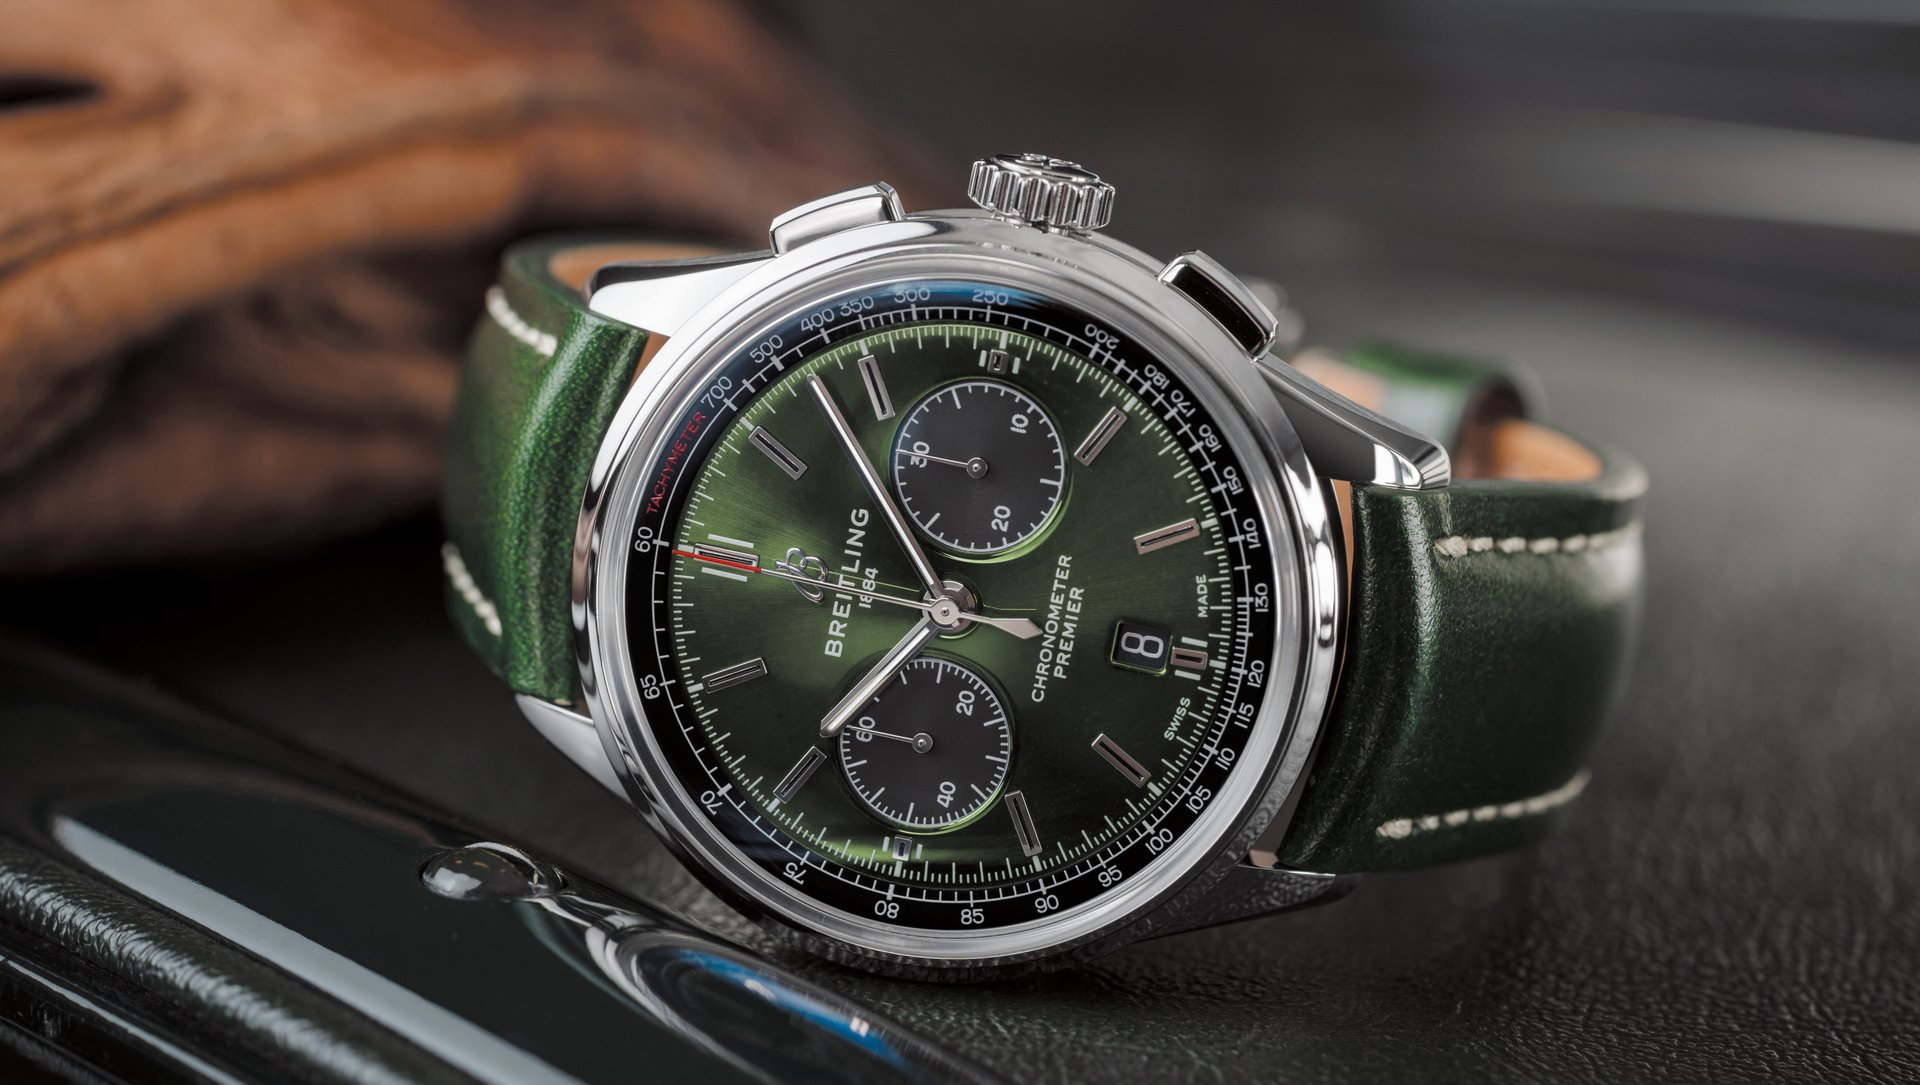 Naziv: 01_premier-b01-chronograph-42-bentley-british-racing-green-with-a-british-racing-green-leather-s.jpg, pregleda: 205, veličina: 254,5 KB